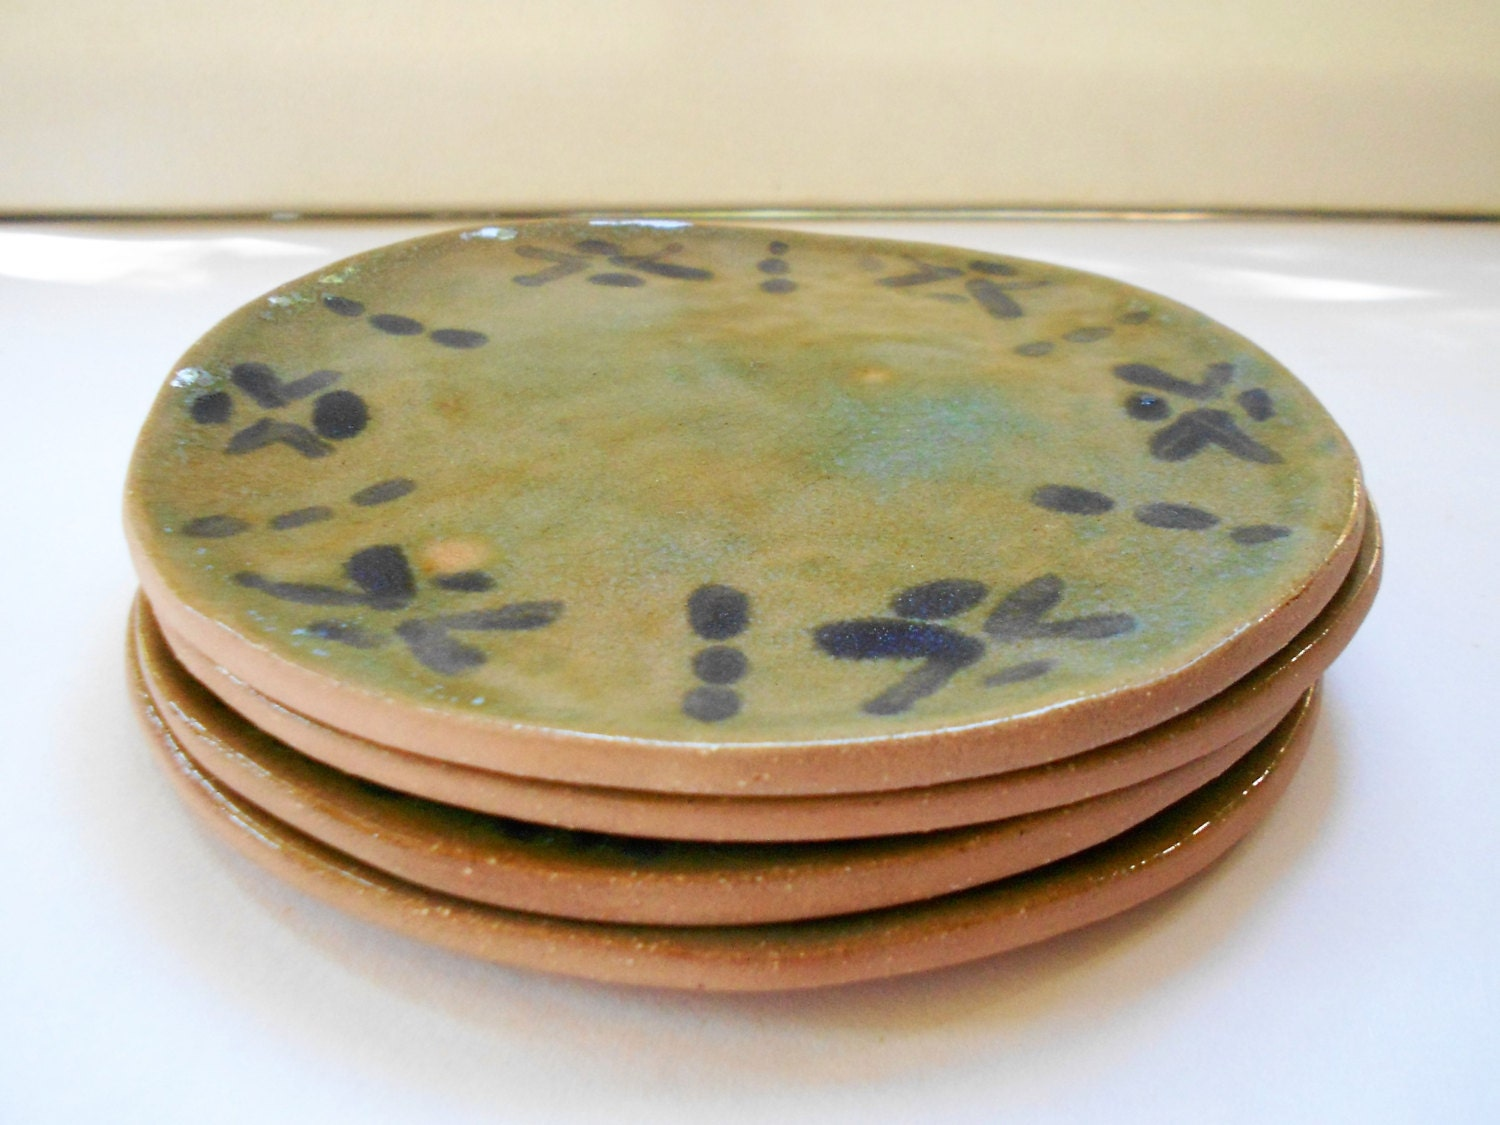 Handmade Pottery Plates Ceramic Tapas Dishes Snack Dessert